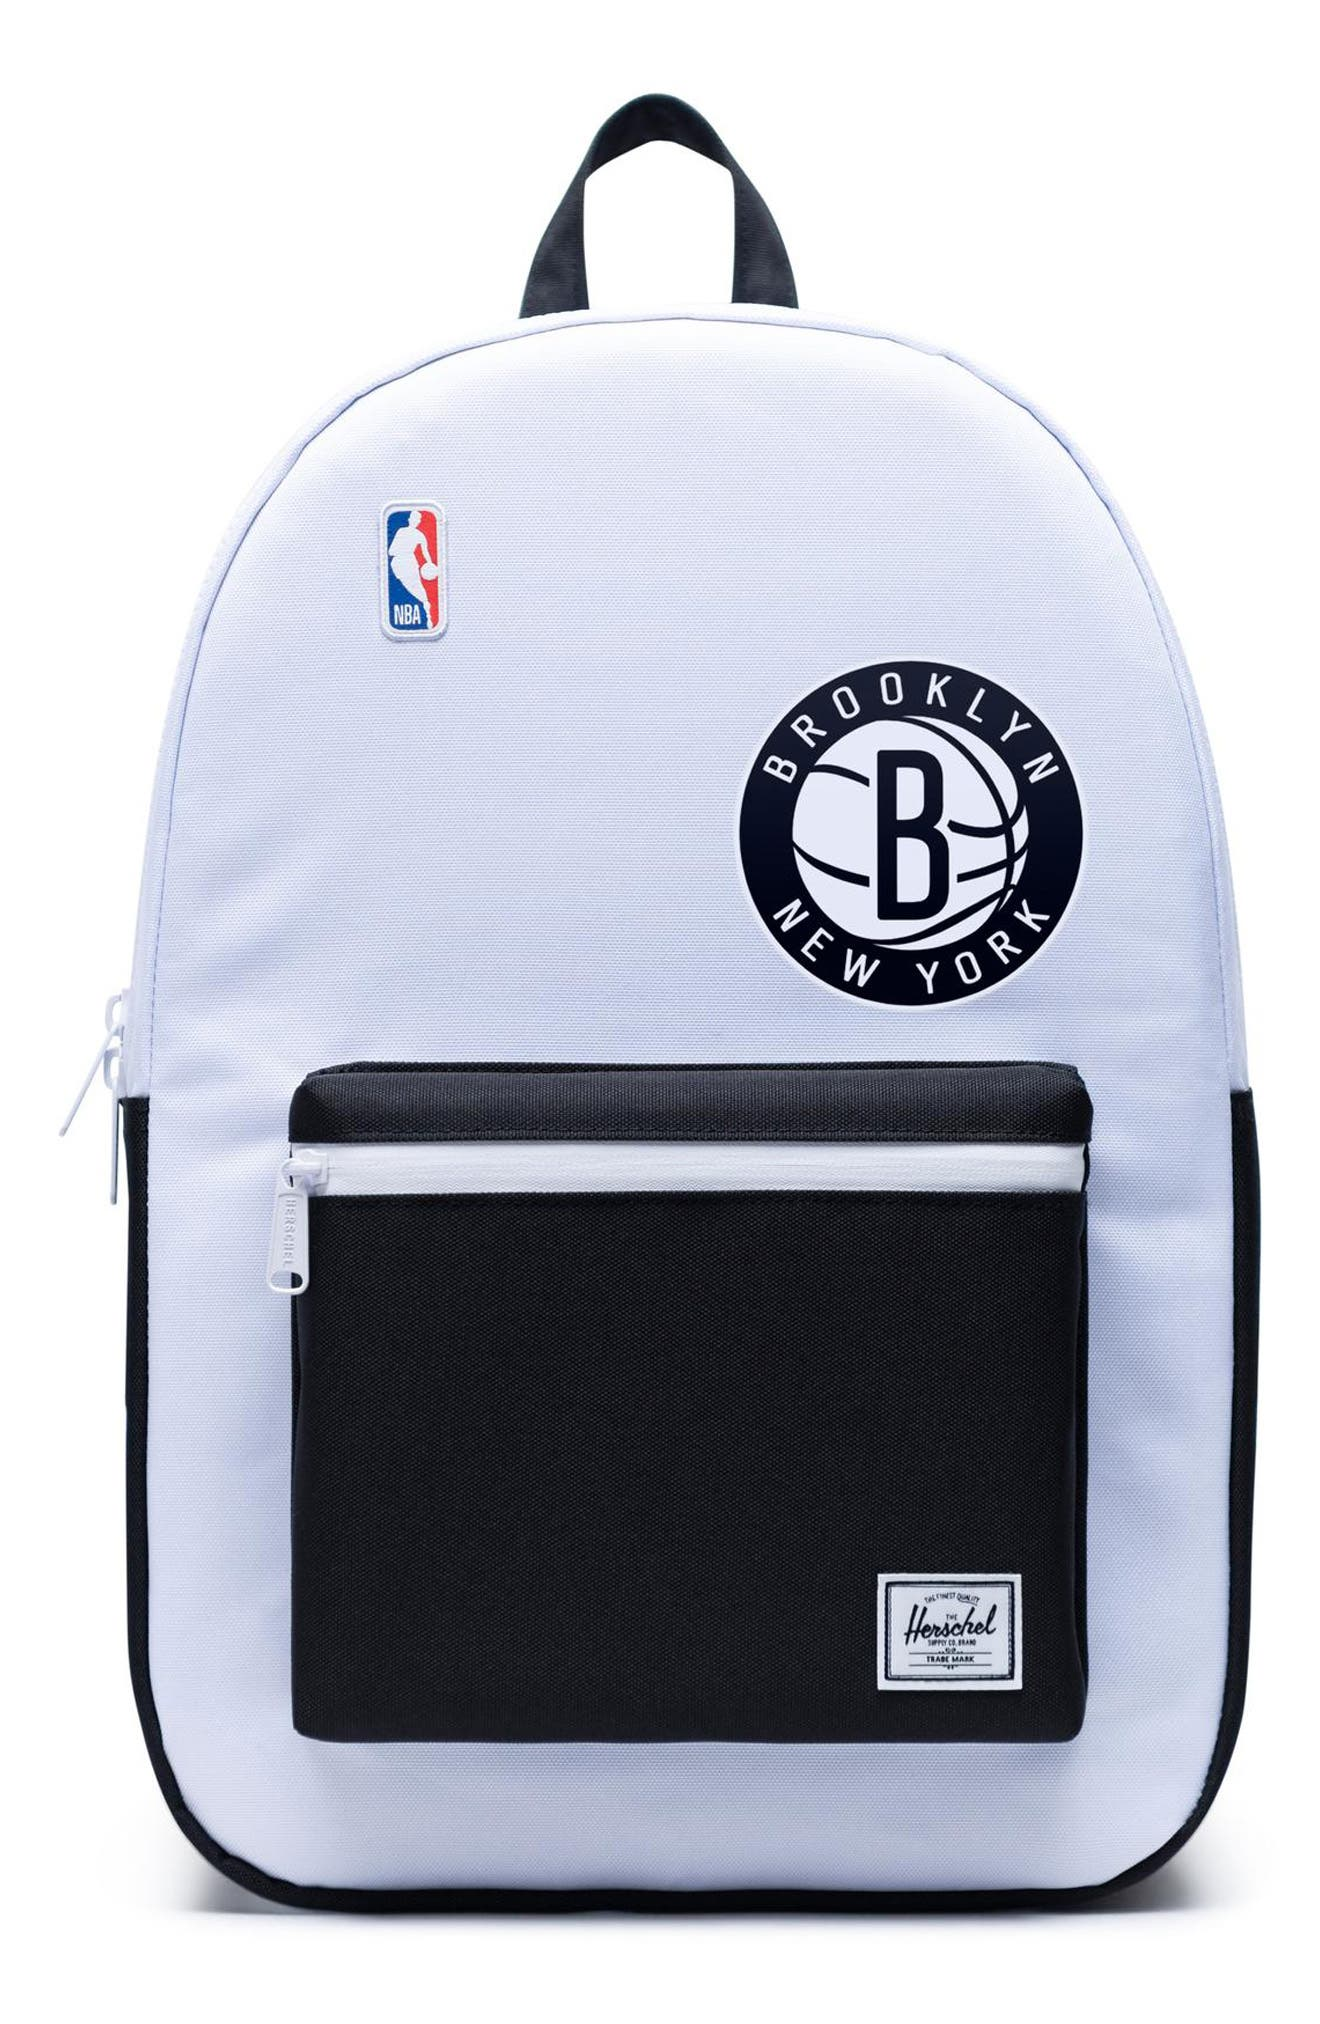 Herschel Supply Co. Settlement Nba Champions 15-Inch Laptop Backpack - White